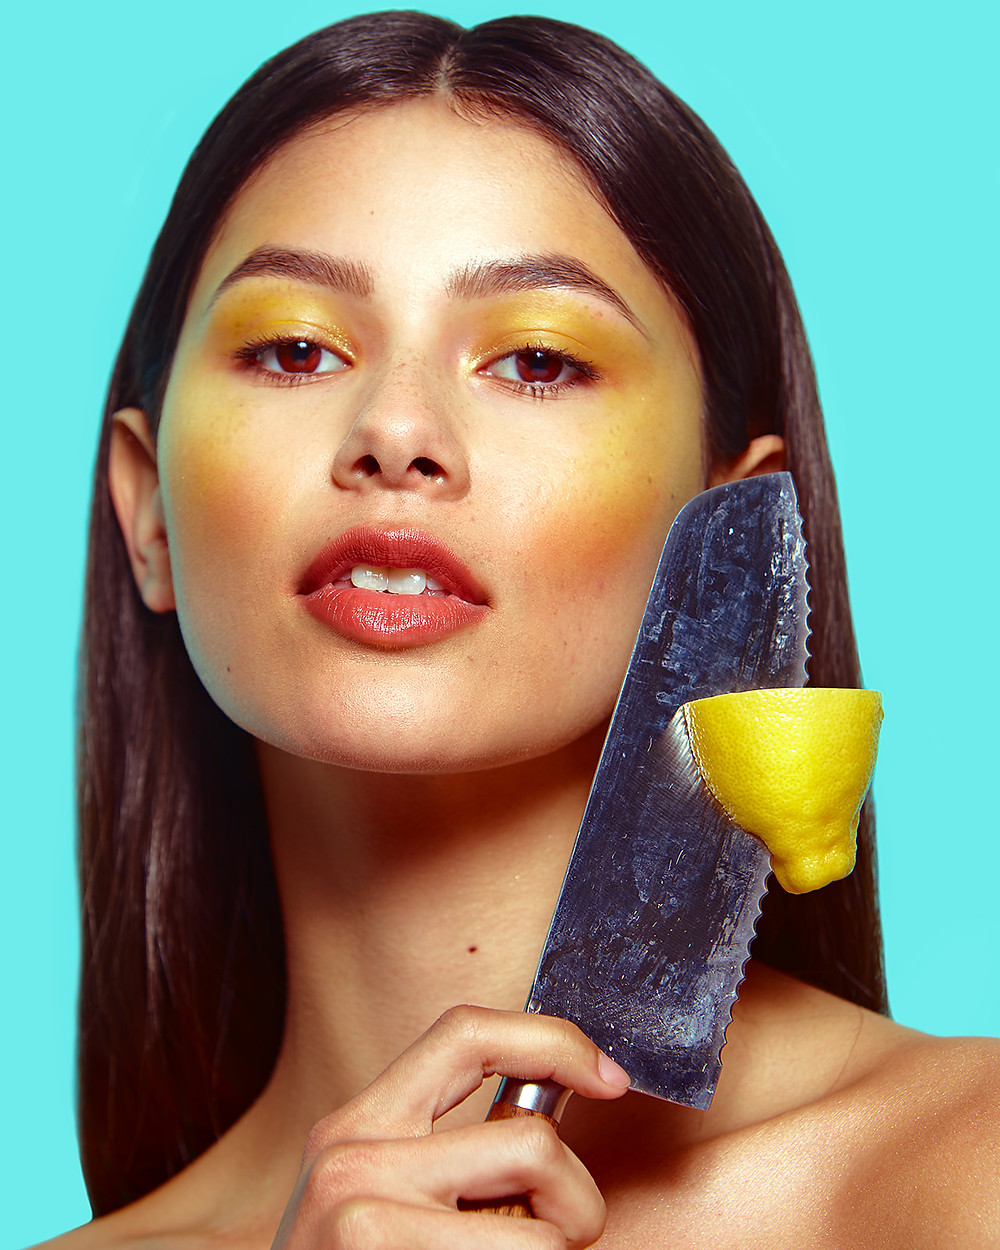 Model Genevieve van Dam holds a knife and a lemon in a fruit-inspired beauty editorial photo shoot published in New Face Fashion Magazine and photographed by commercial and fashion photographer Patrick Patton.